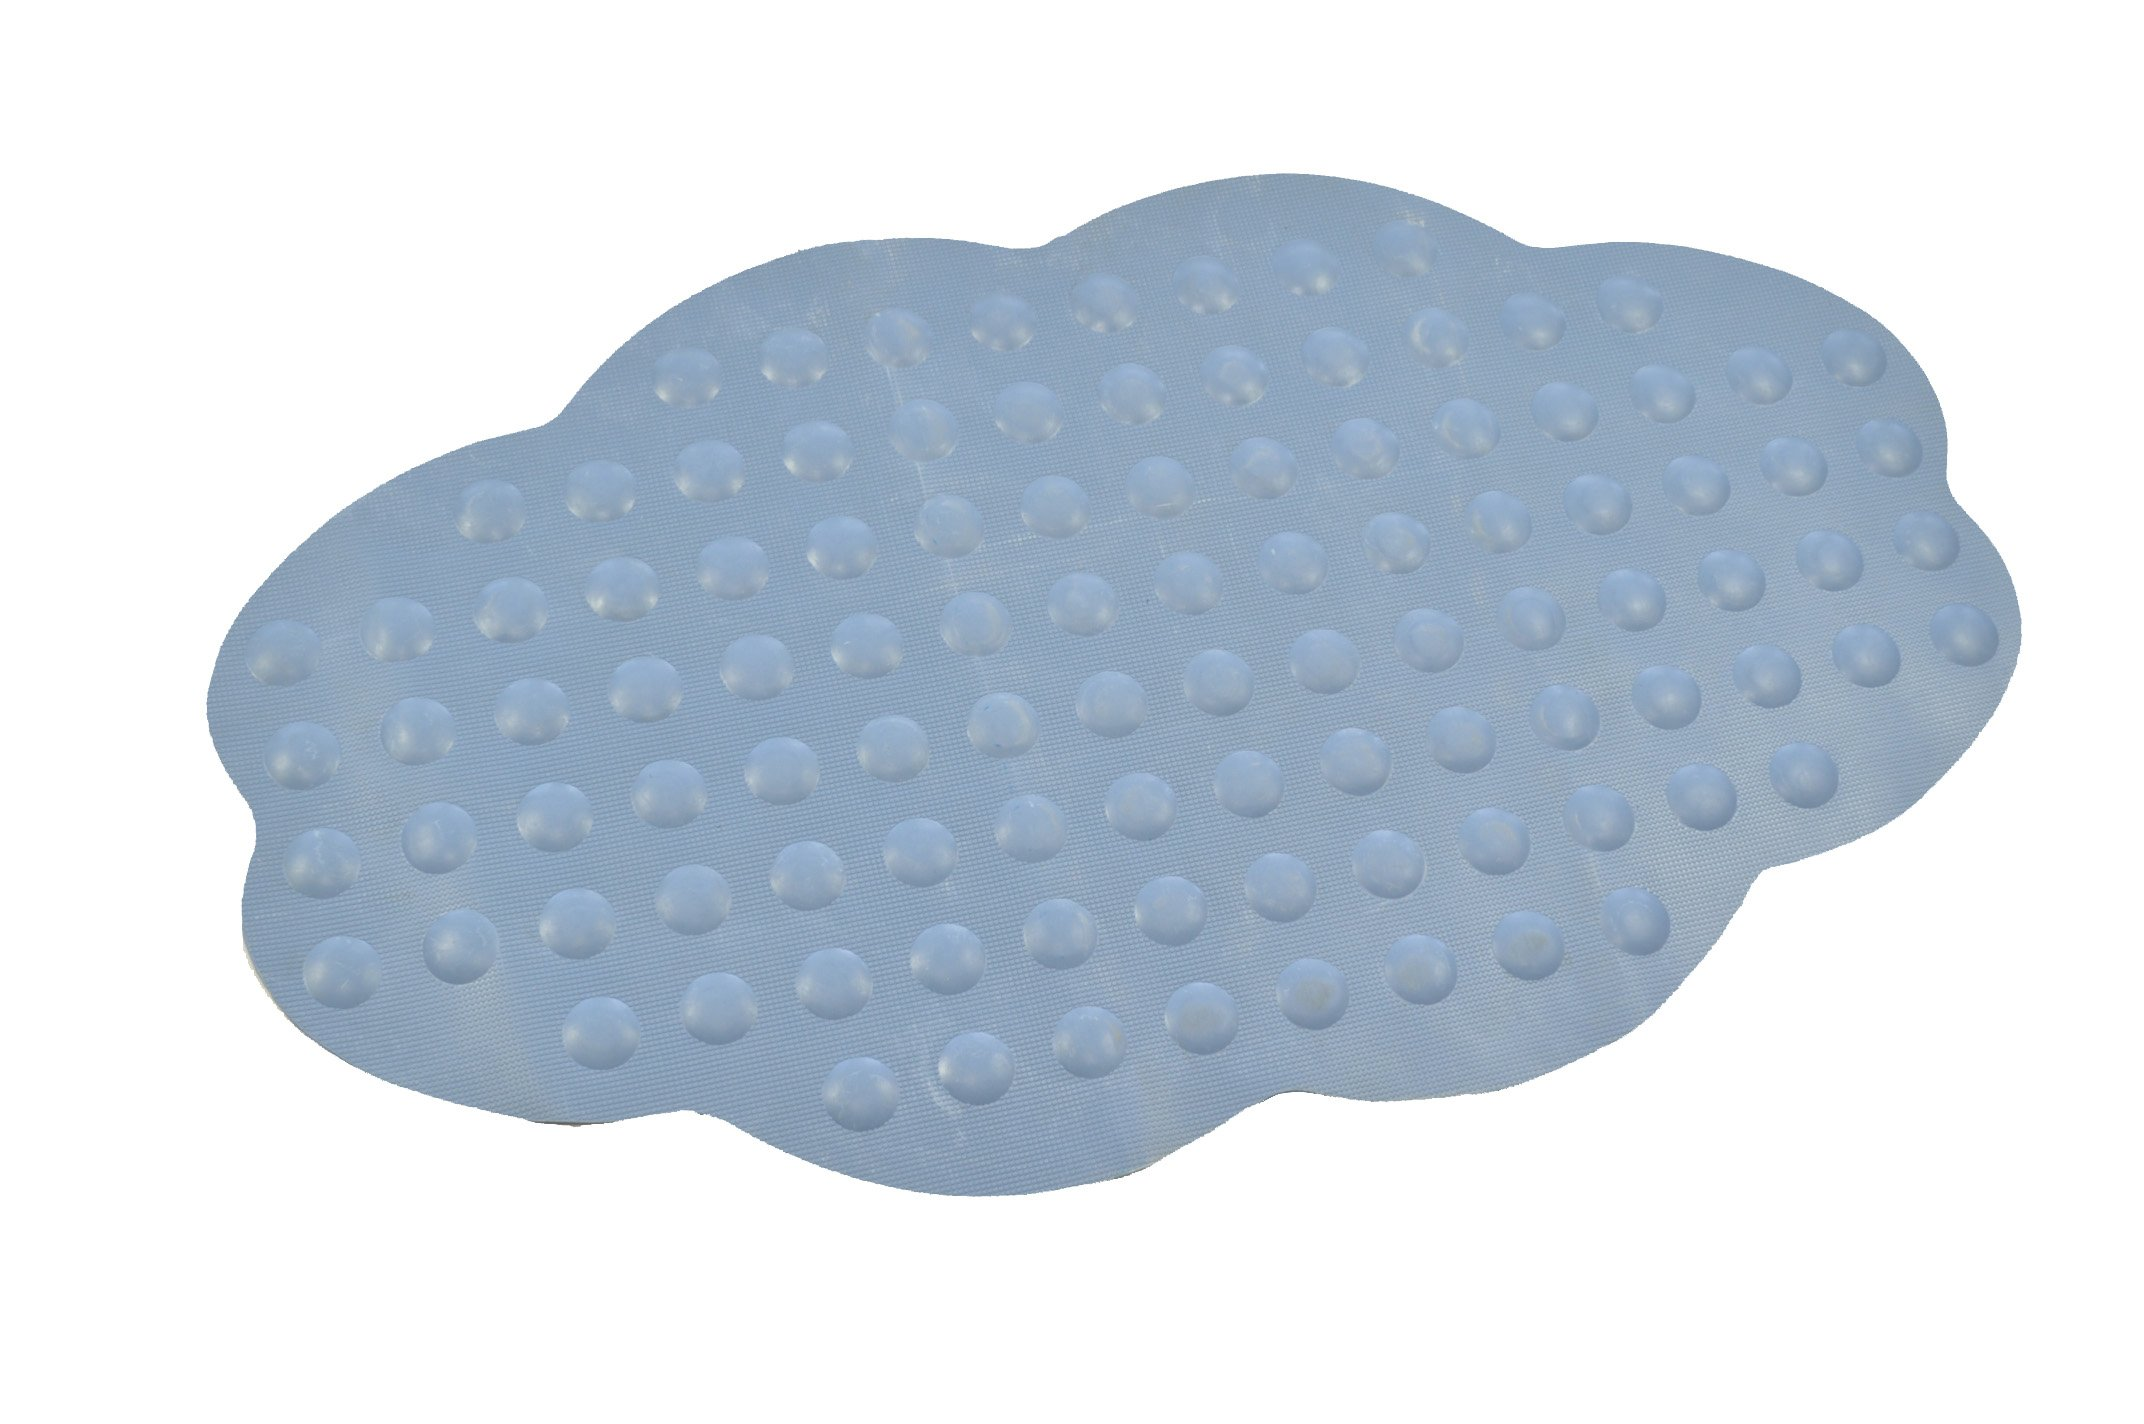 ABELE (R) Cloud Non Slip Rubber Safety Baby Kids Shower Blue Bubble Tub Bath Mat, Skid Proof and Anti Bacterial, Mildew Mold Resistant Bathtub Mat (Blue)